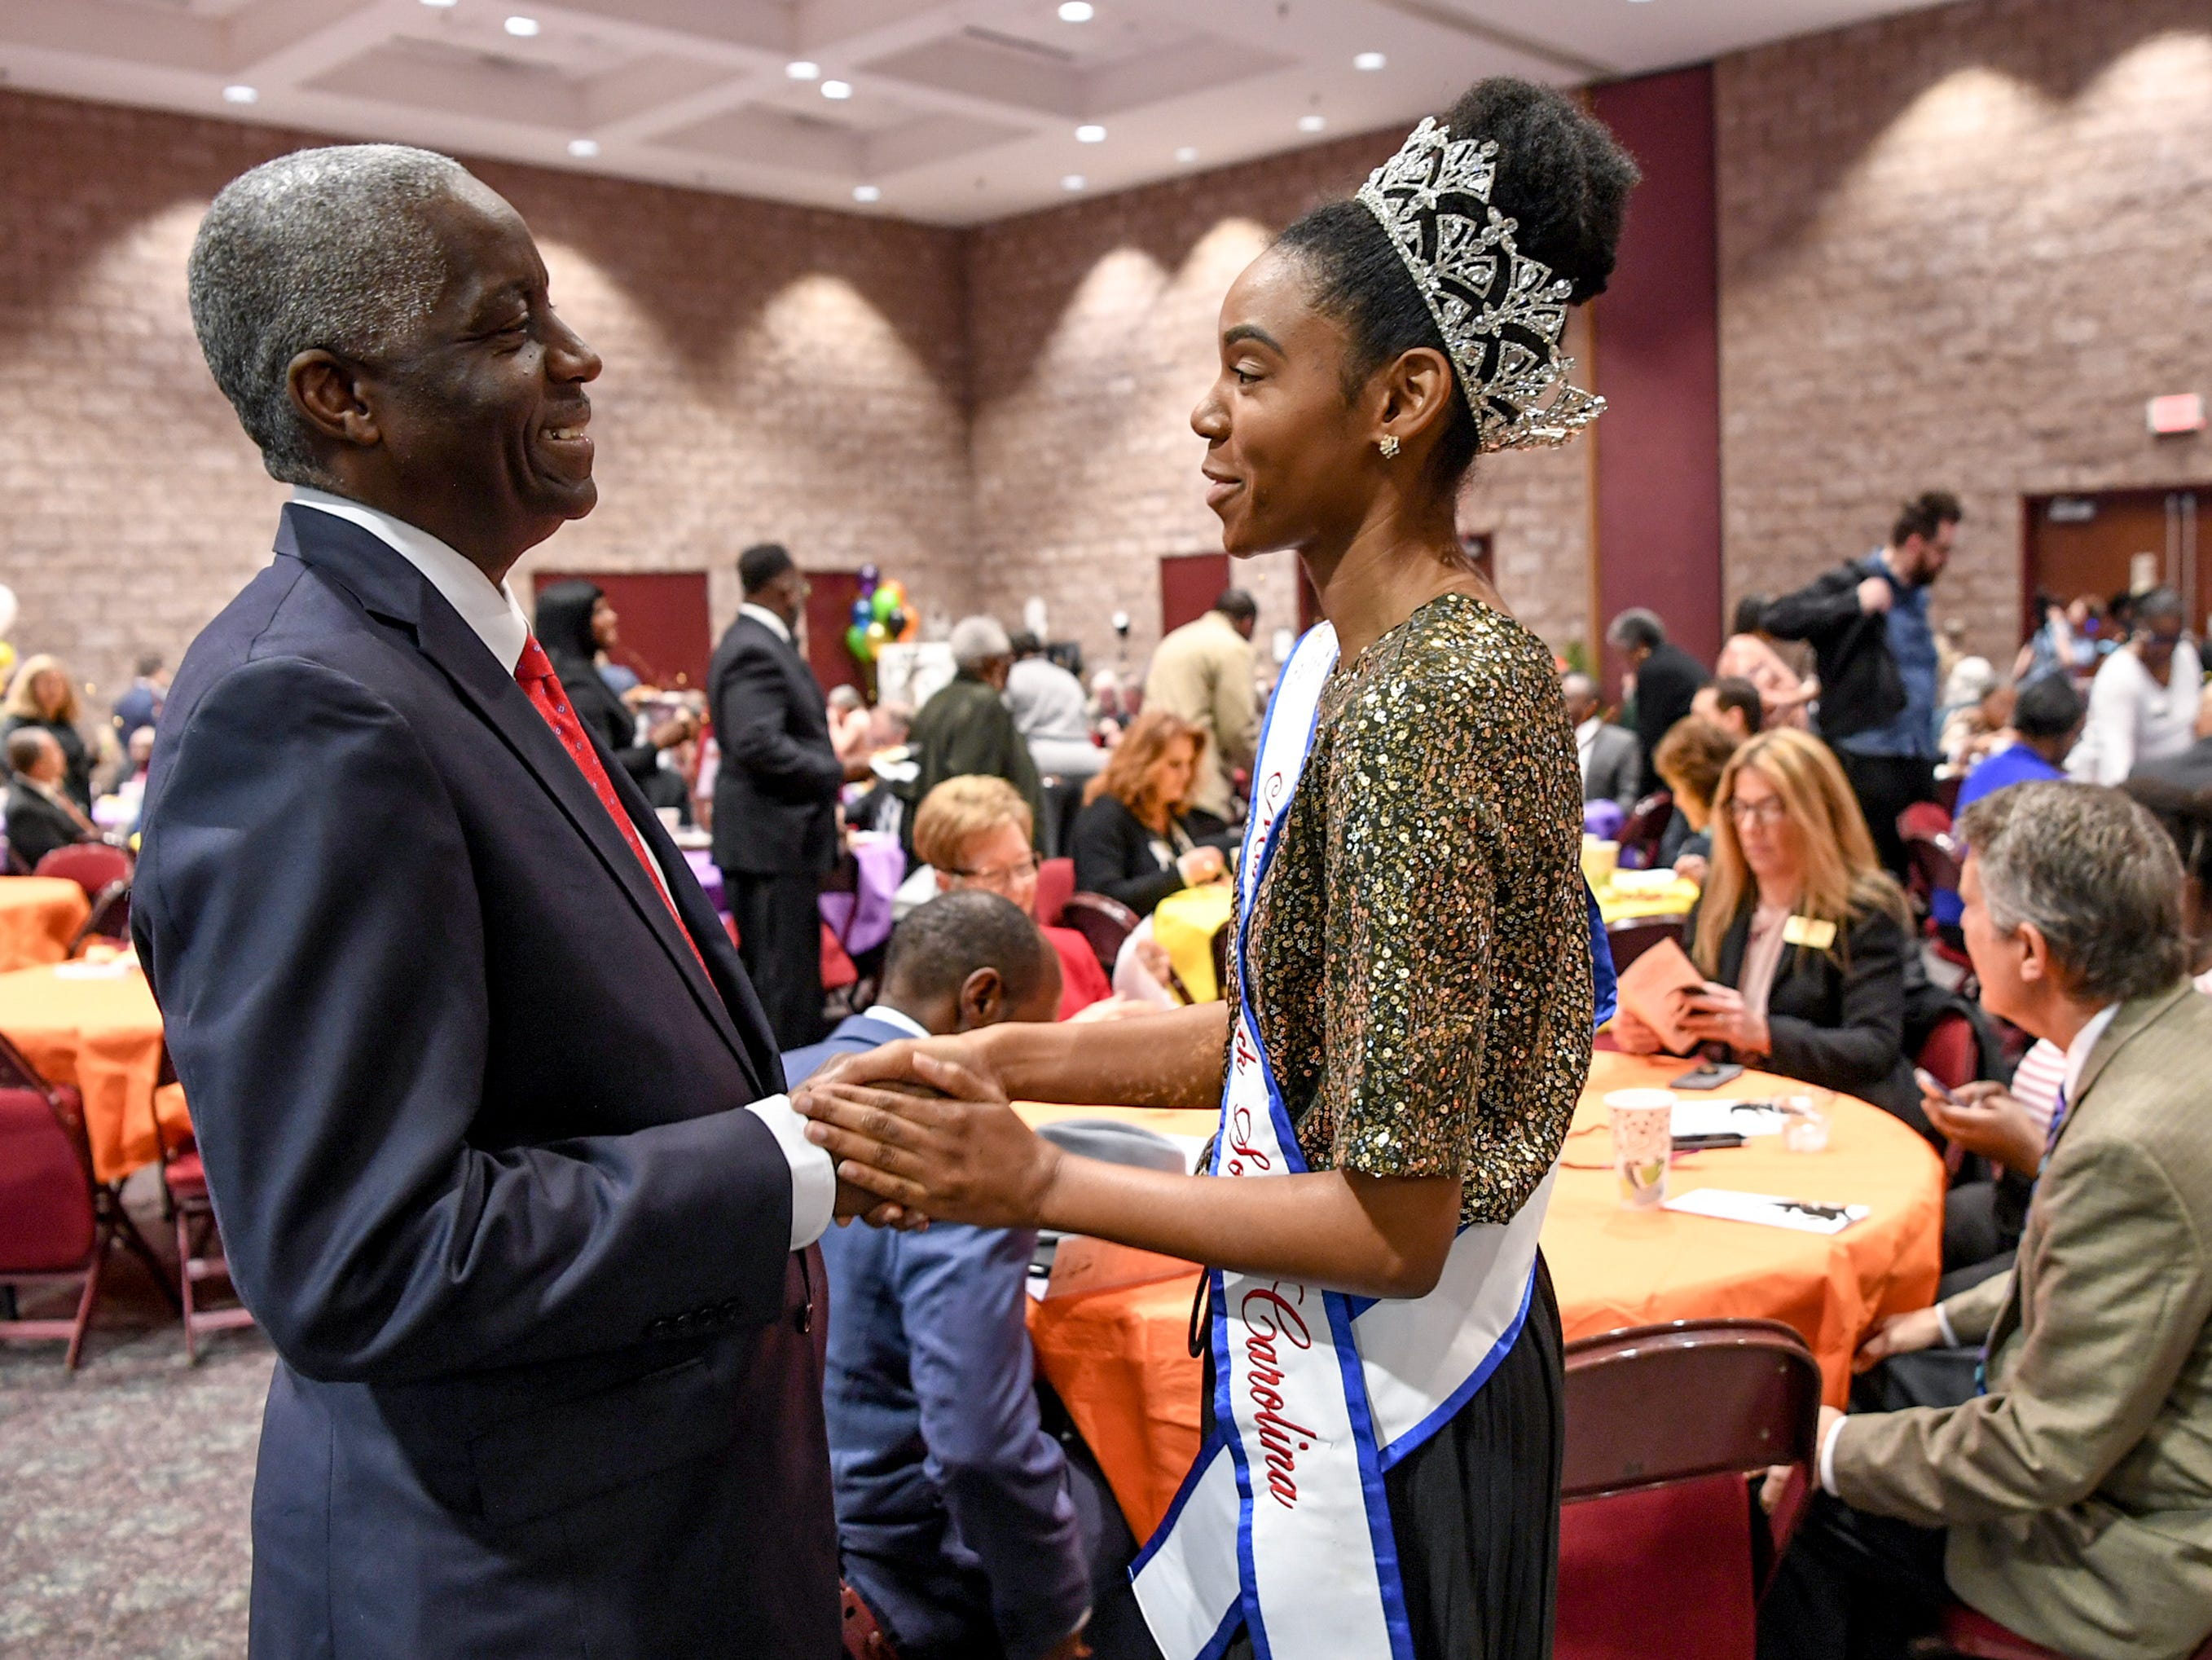 Mayor Terence Roberts, left, and Angel Wheeler, Miss Black South Carolina USA, greet each other during the Mayor's Martin Luther King Jr Breakfast in the Anderson Civic Center Friday, January 18, 2019.